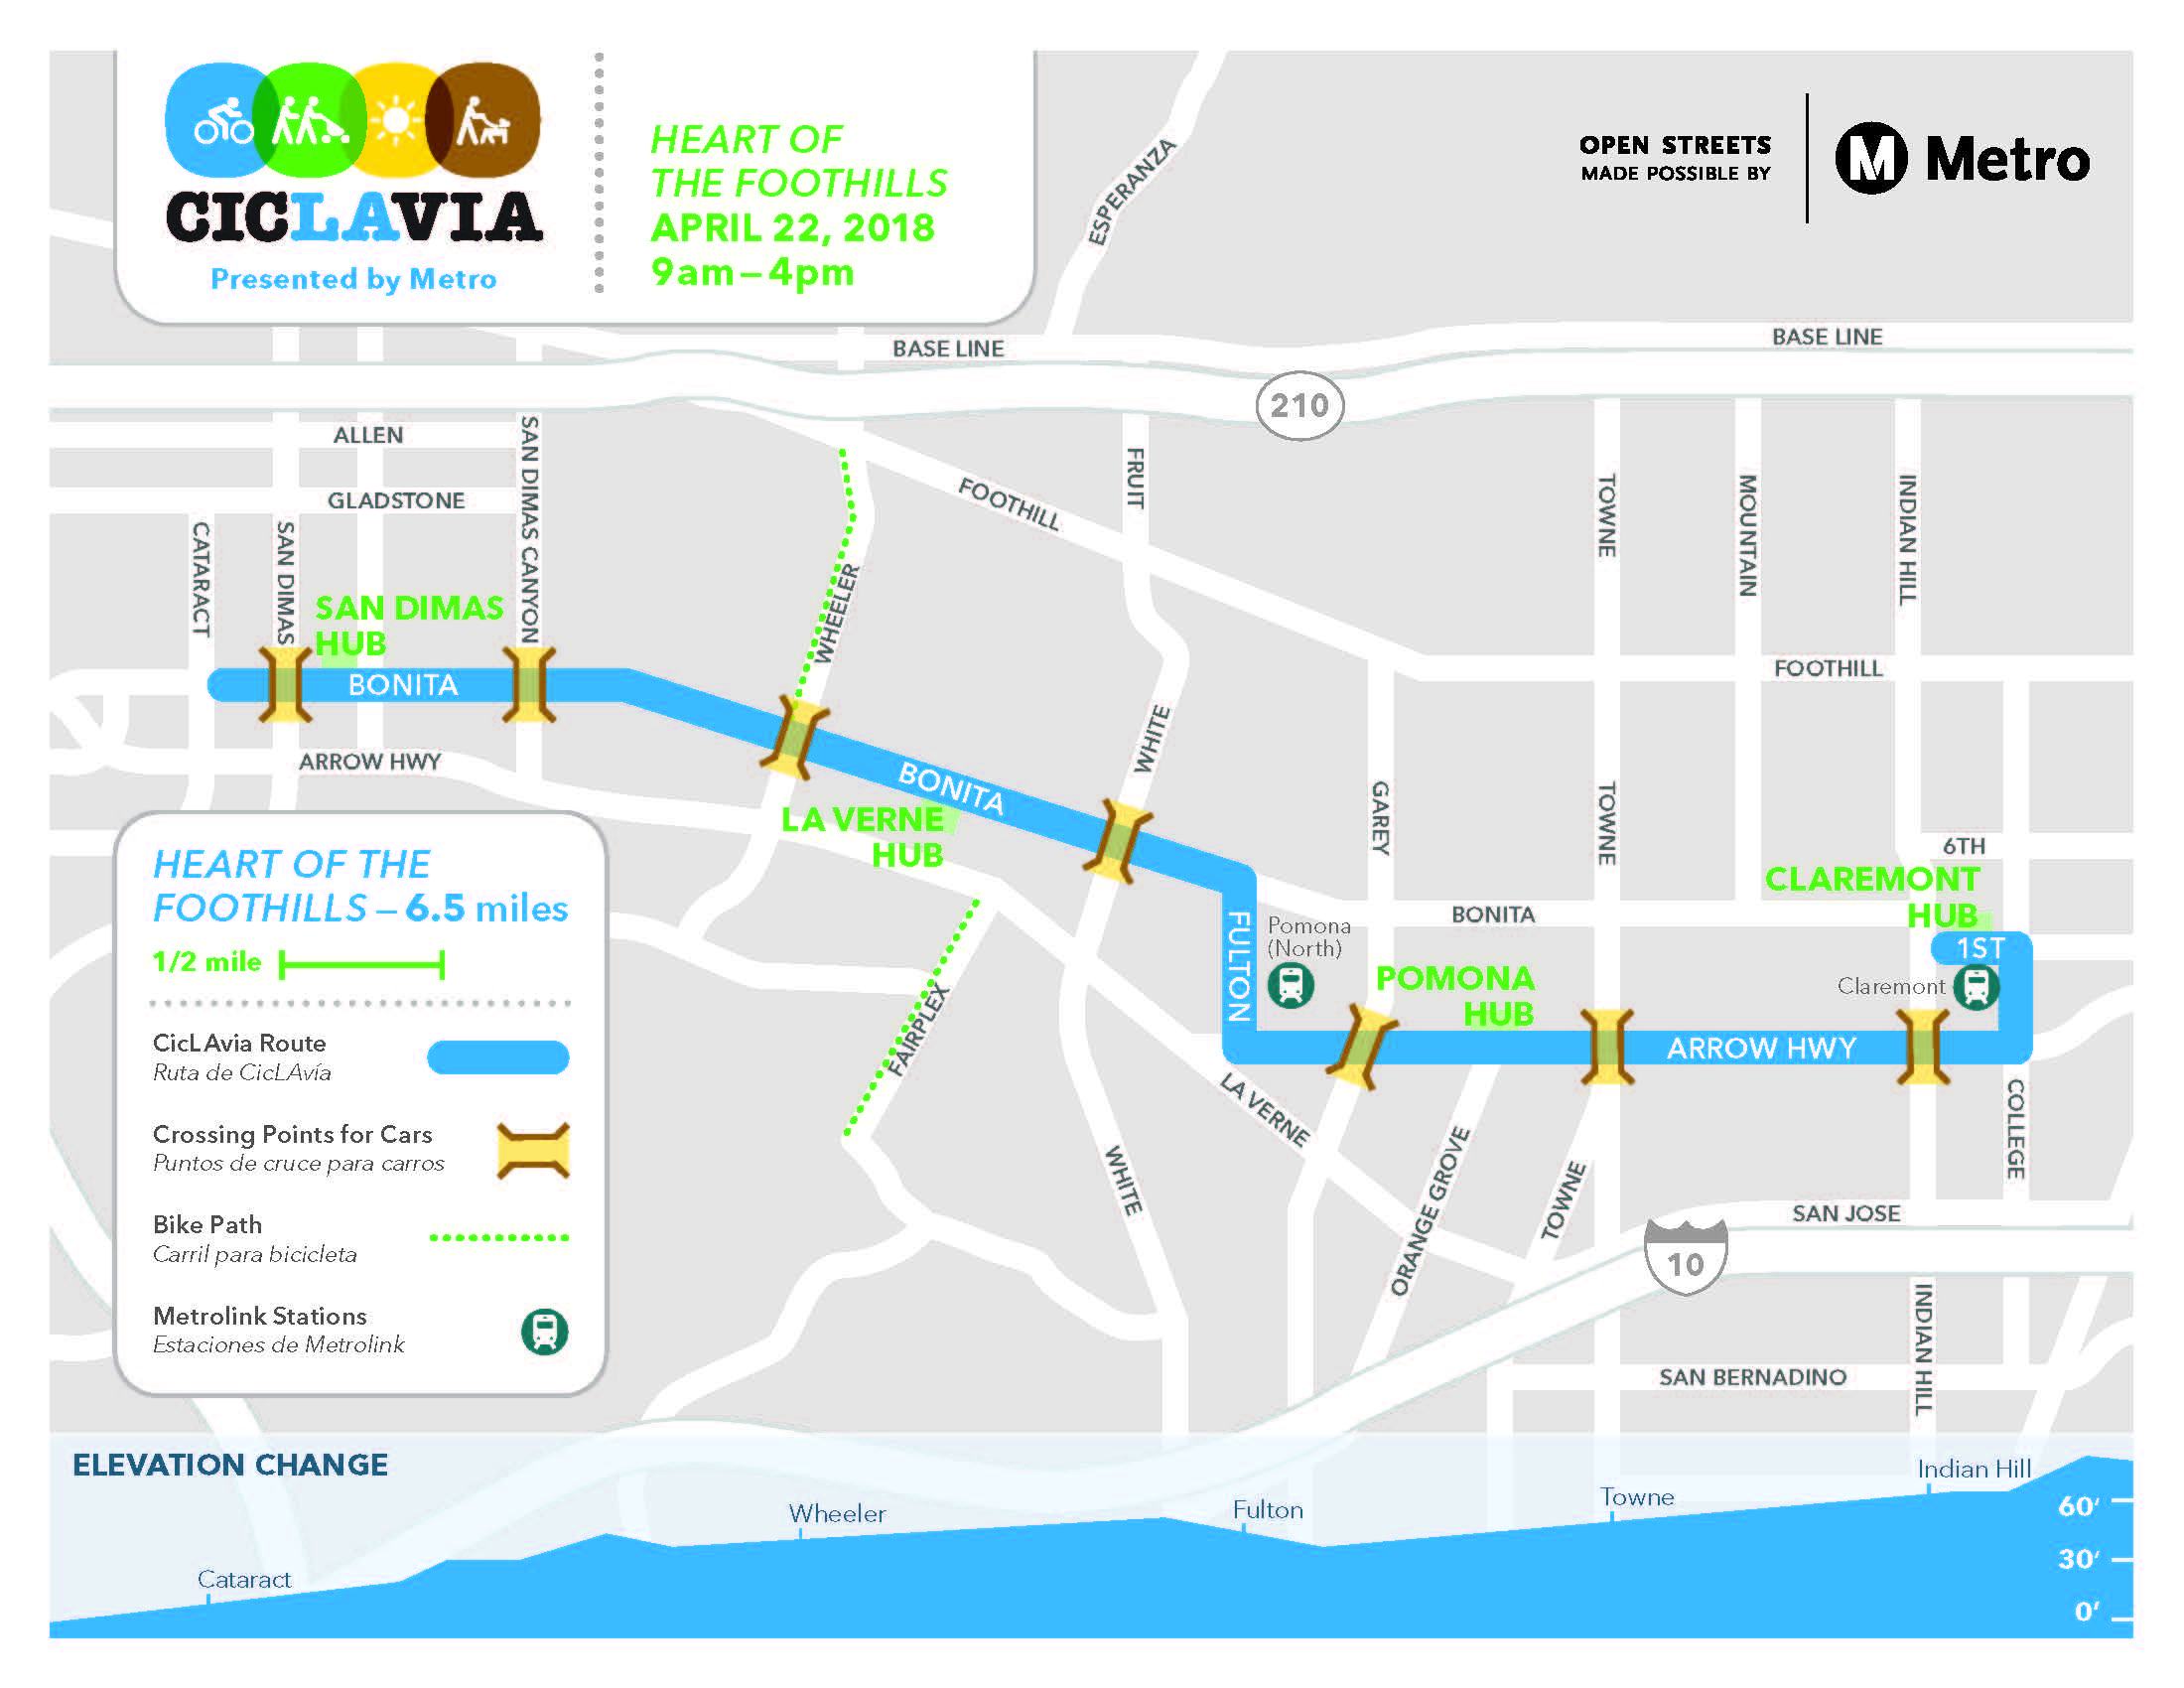 ciclavia_foothill_map_3.jpg